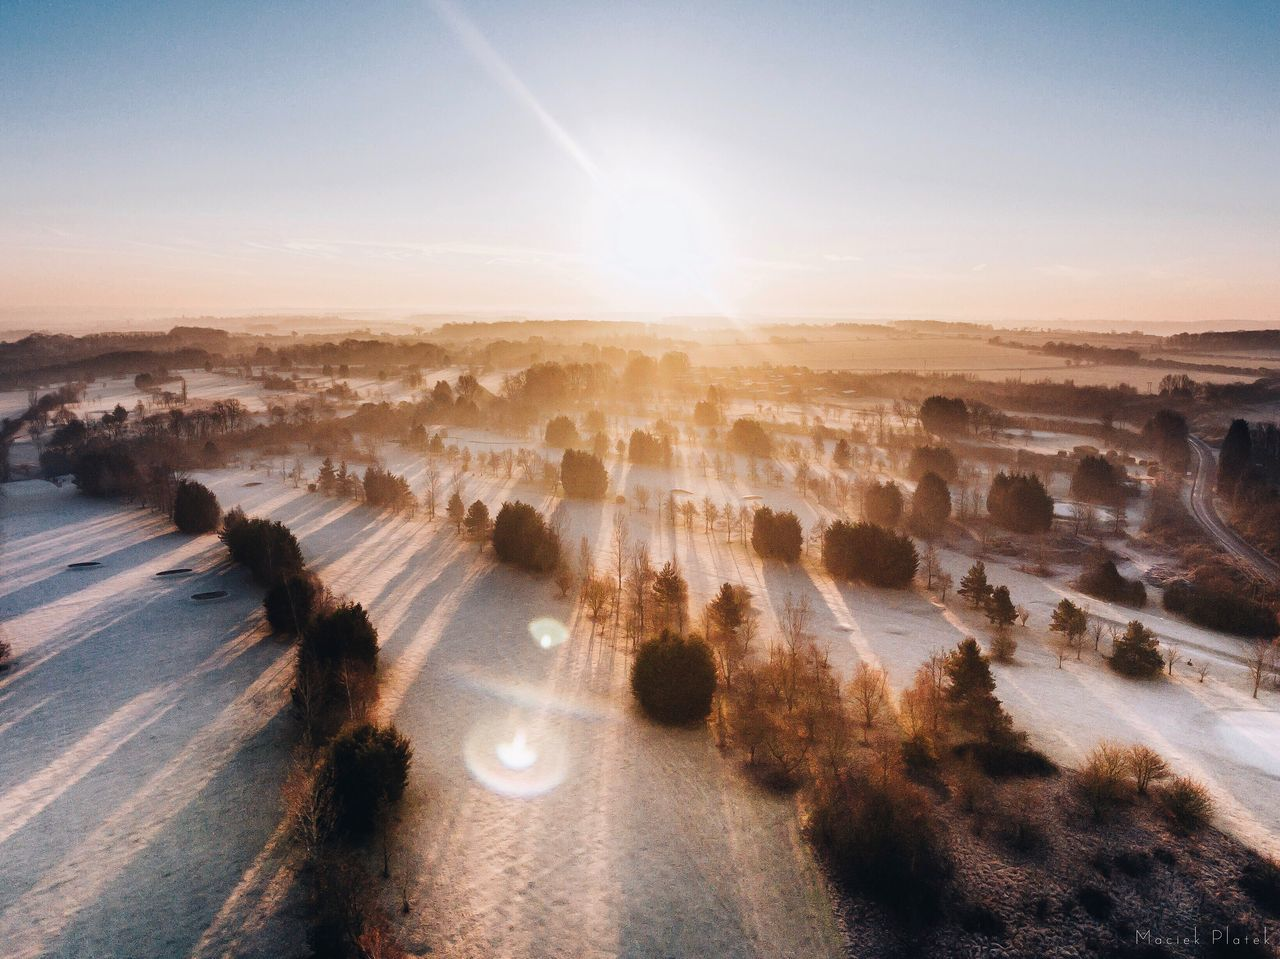 Frosty Sunrise Dronephotography Drone  Phantom 4 Dji Aerial Aerial Photography Landscape Epic Winter Frost Sunrise Snow Outdoors Sunlight Nature Sunbeam Sky Sun Beauty In Nature No People Tranquility